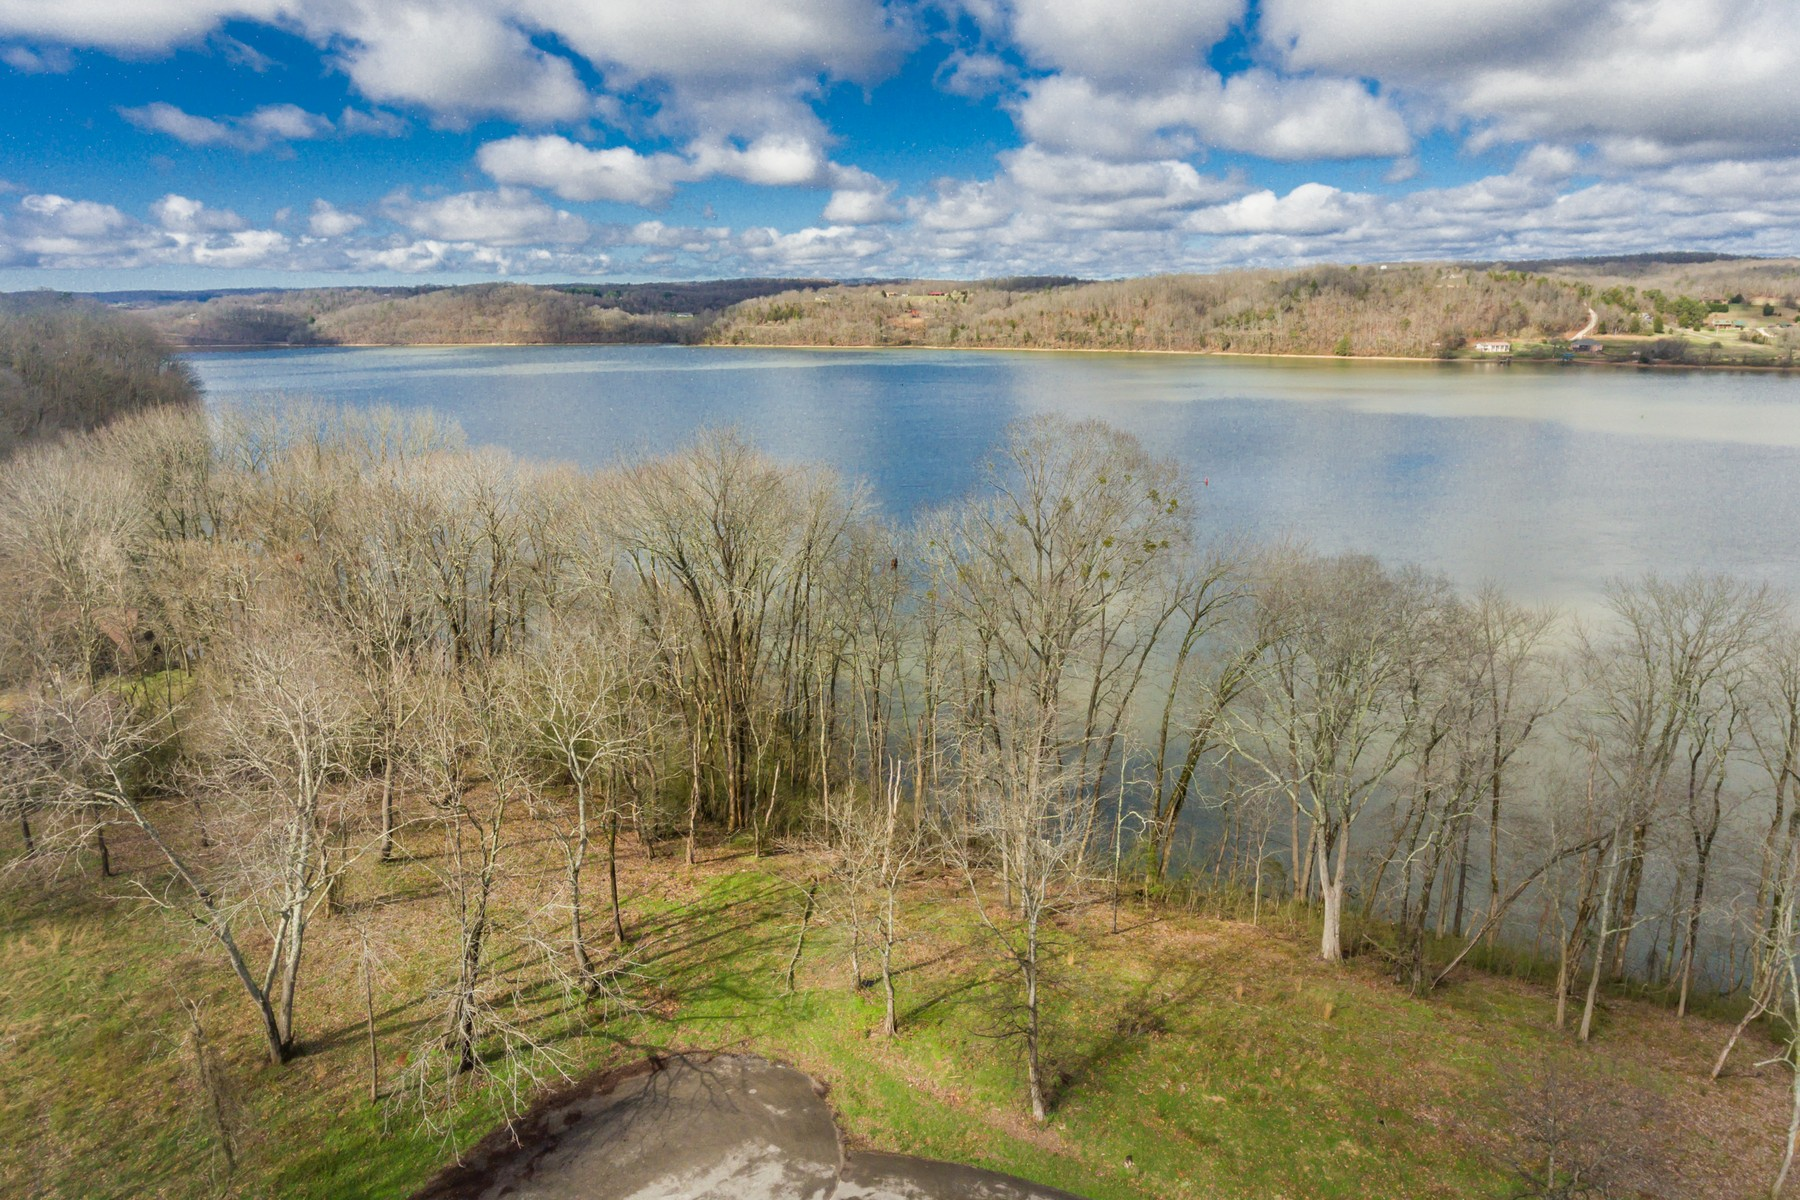 Land for Sale at Exceptional Waterfront Property Deer Lane Lots 7 and 8 Kingston, Tennessee 37763 United States